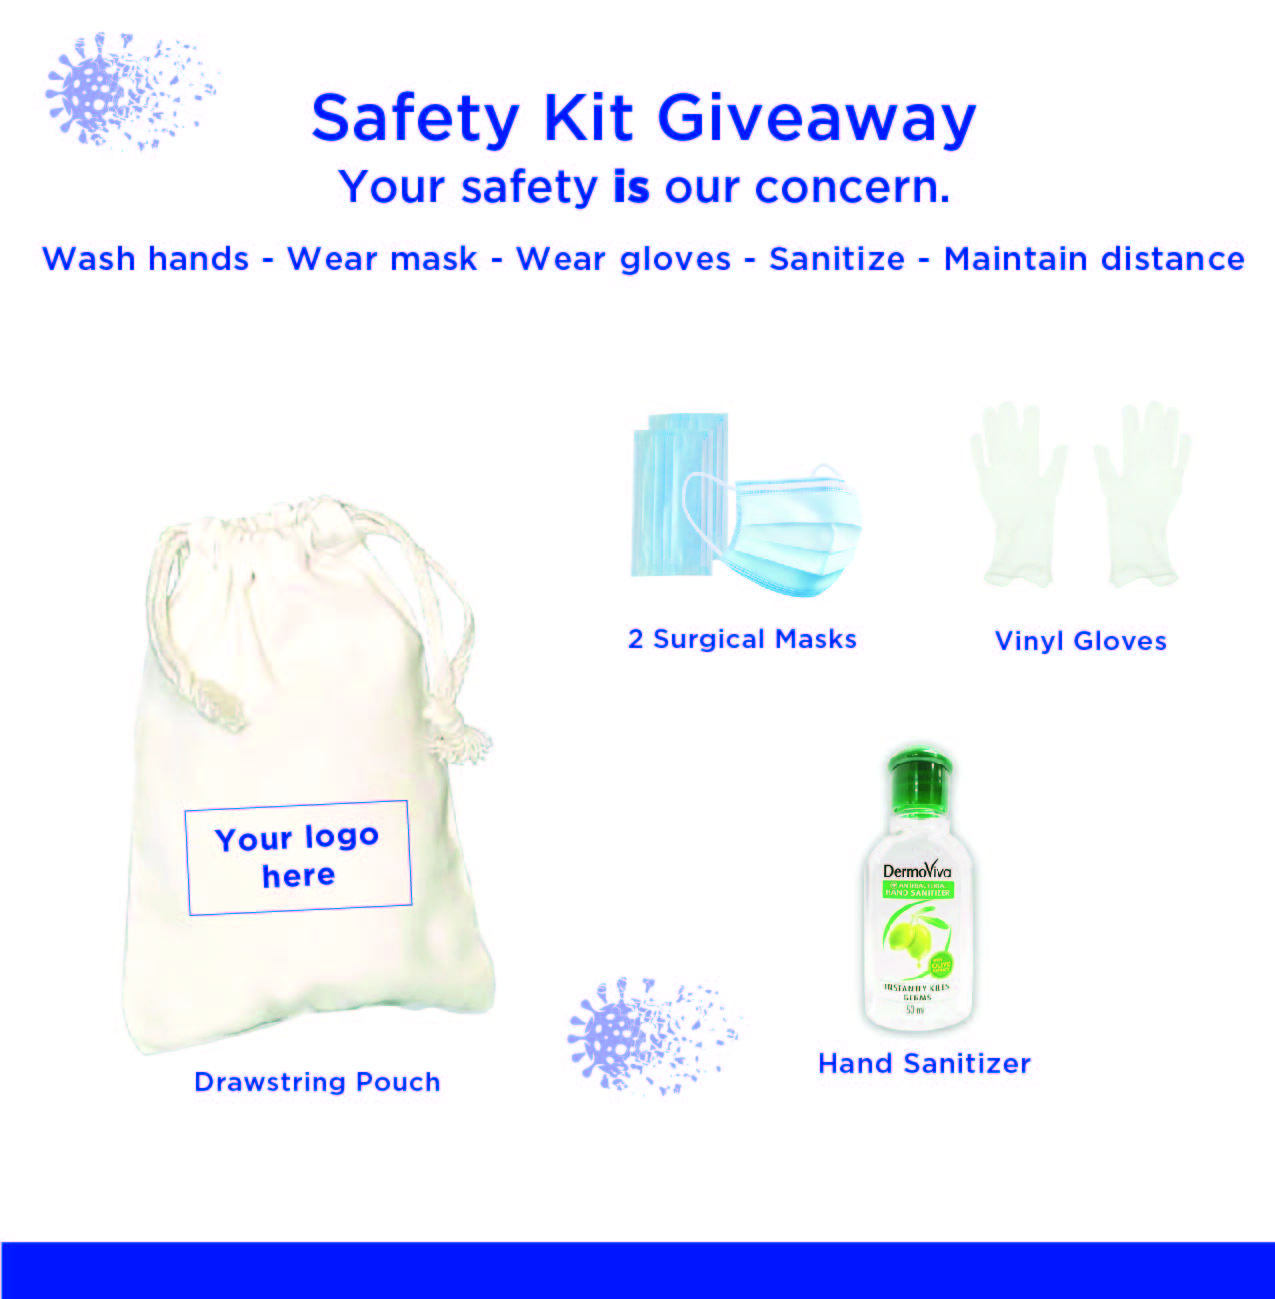 Safety Kit Giveaway